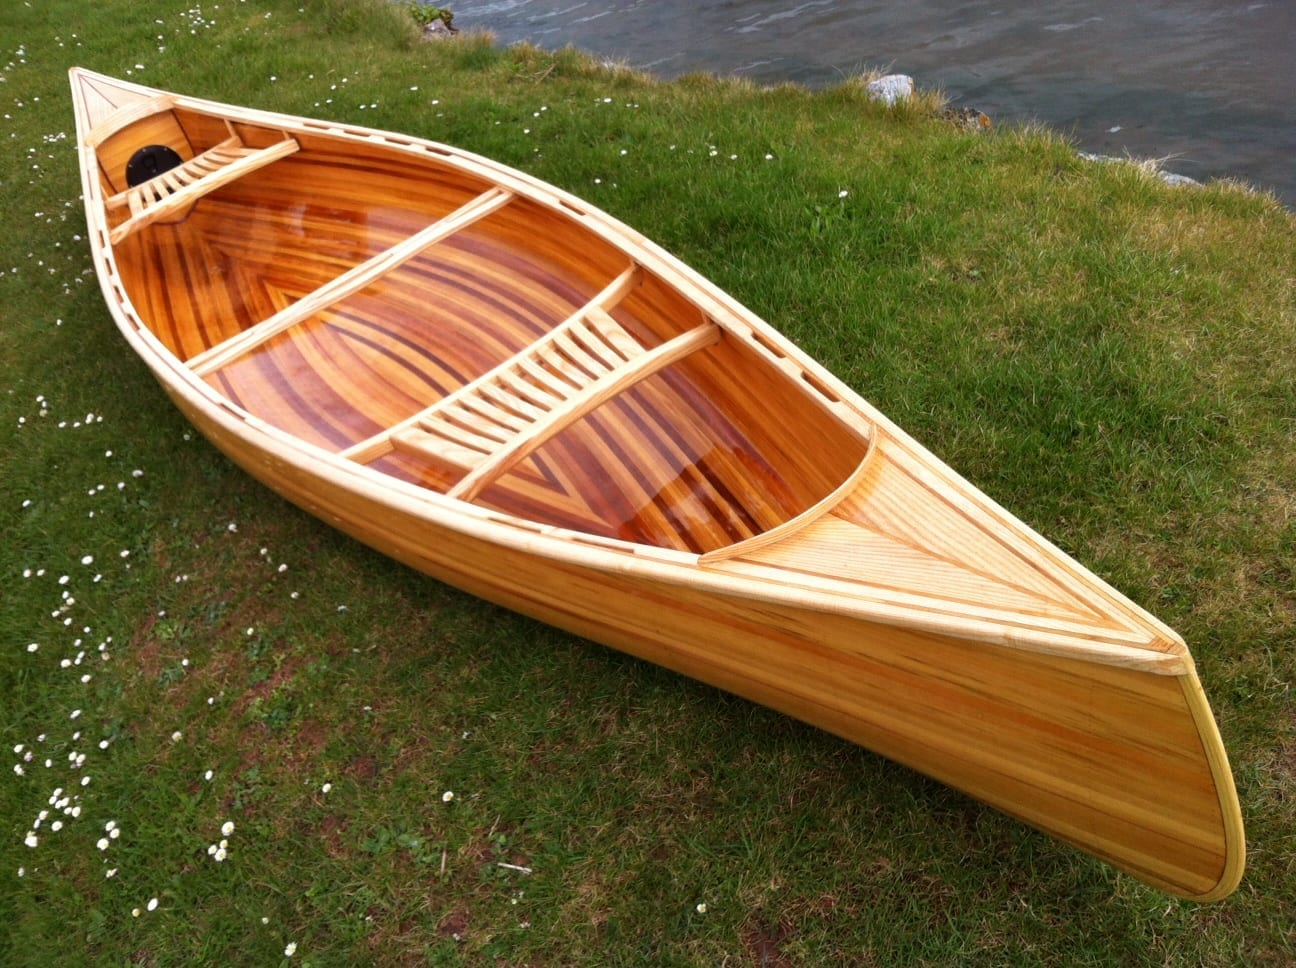 Build a strip canoe